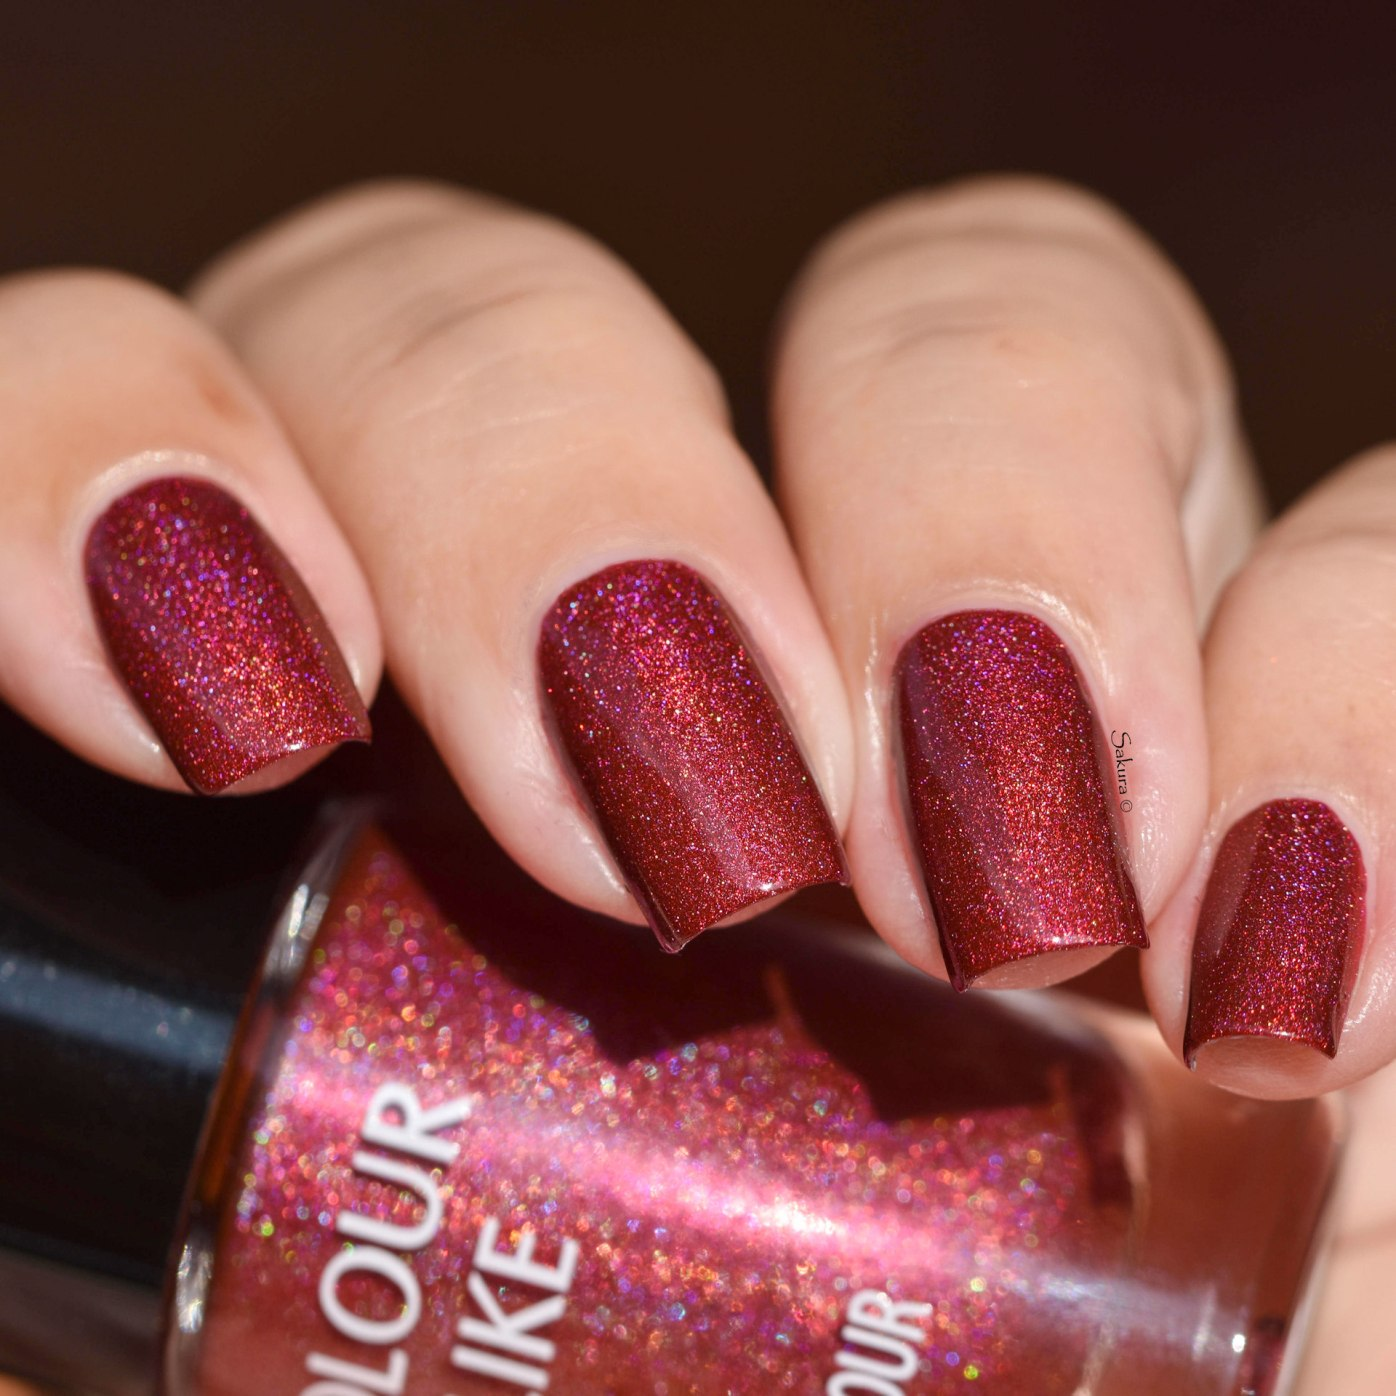 COLOUR ALIKE RED PEAR H 4 5